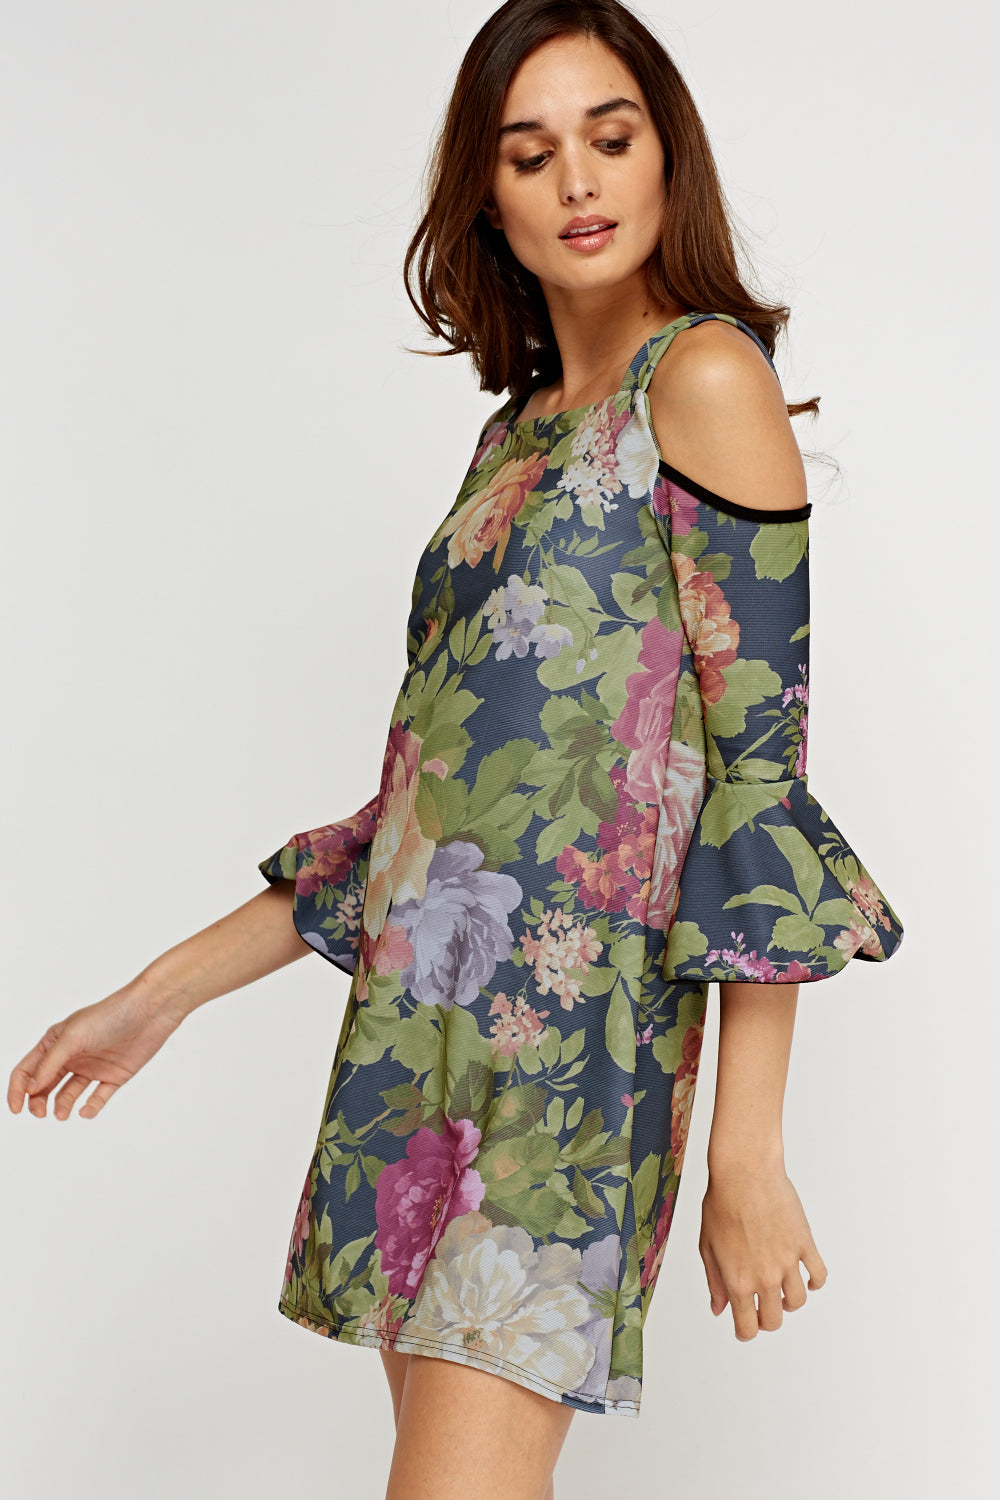 Vestido estampado cold shoulder - MiTiendaSecreta